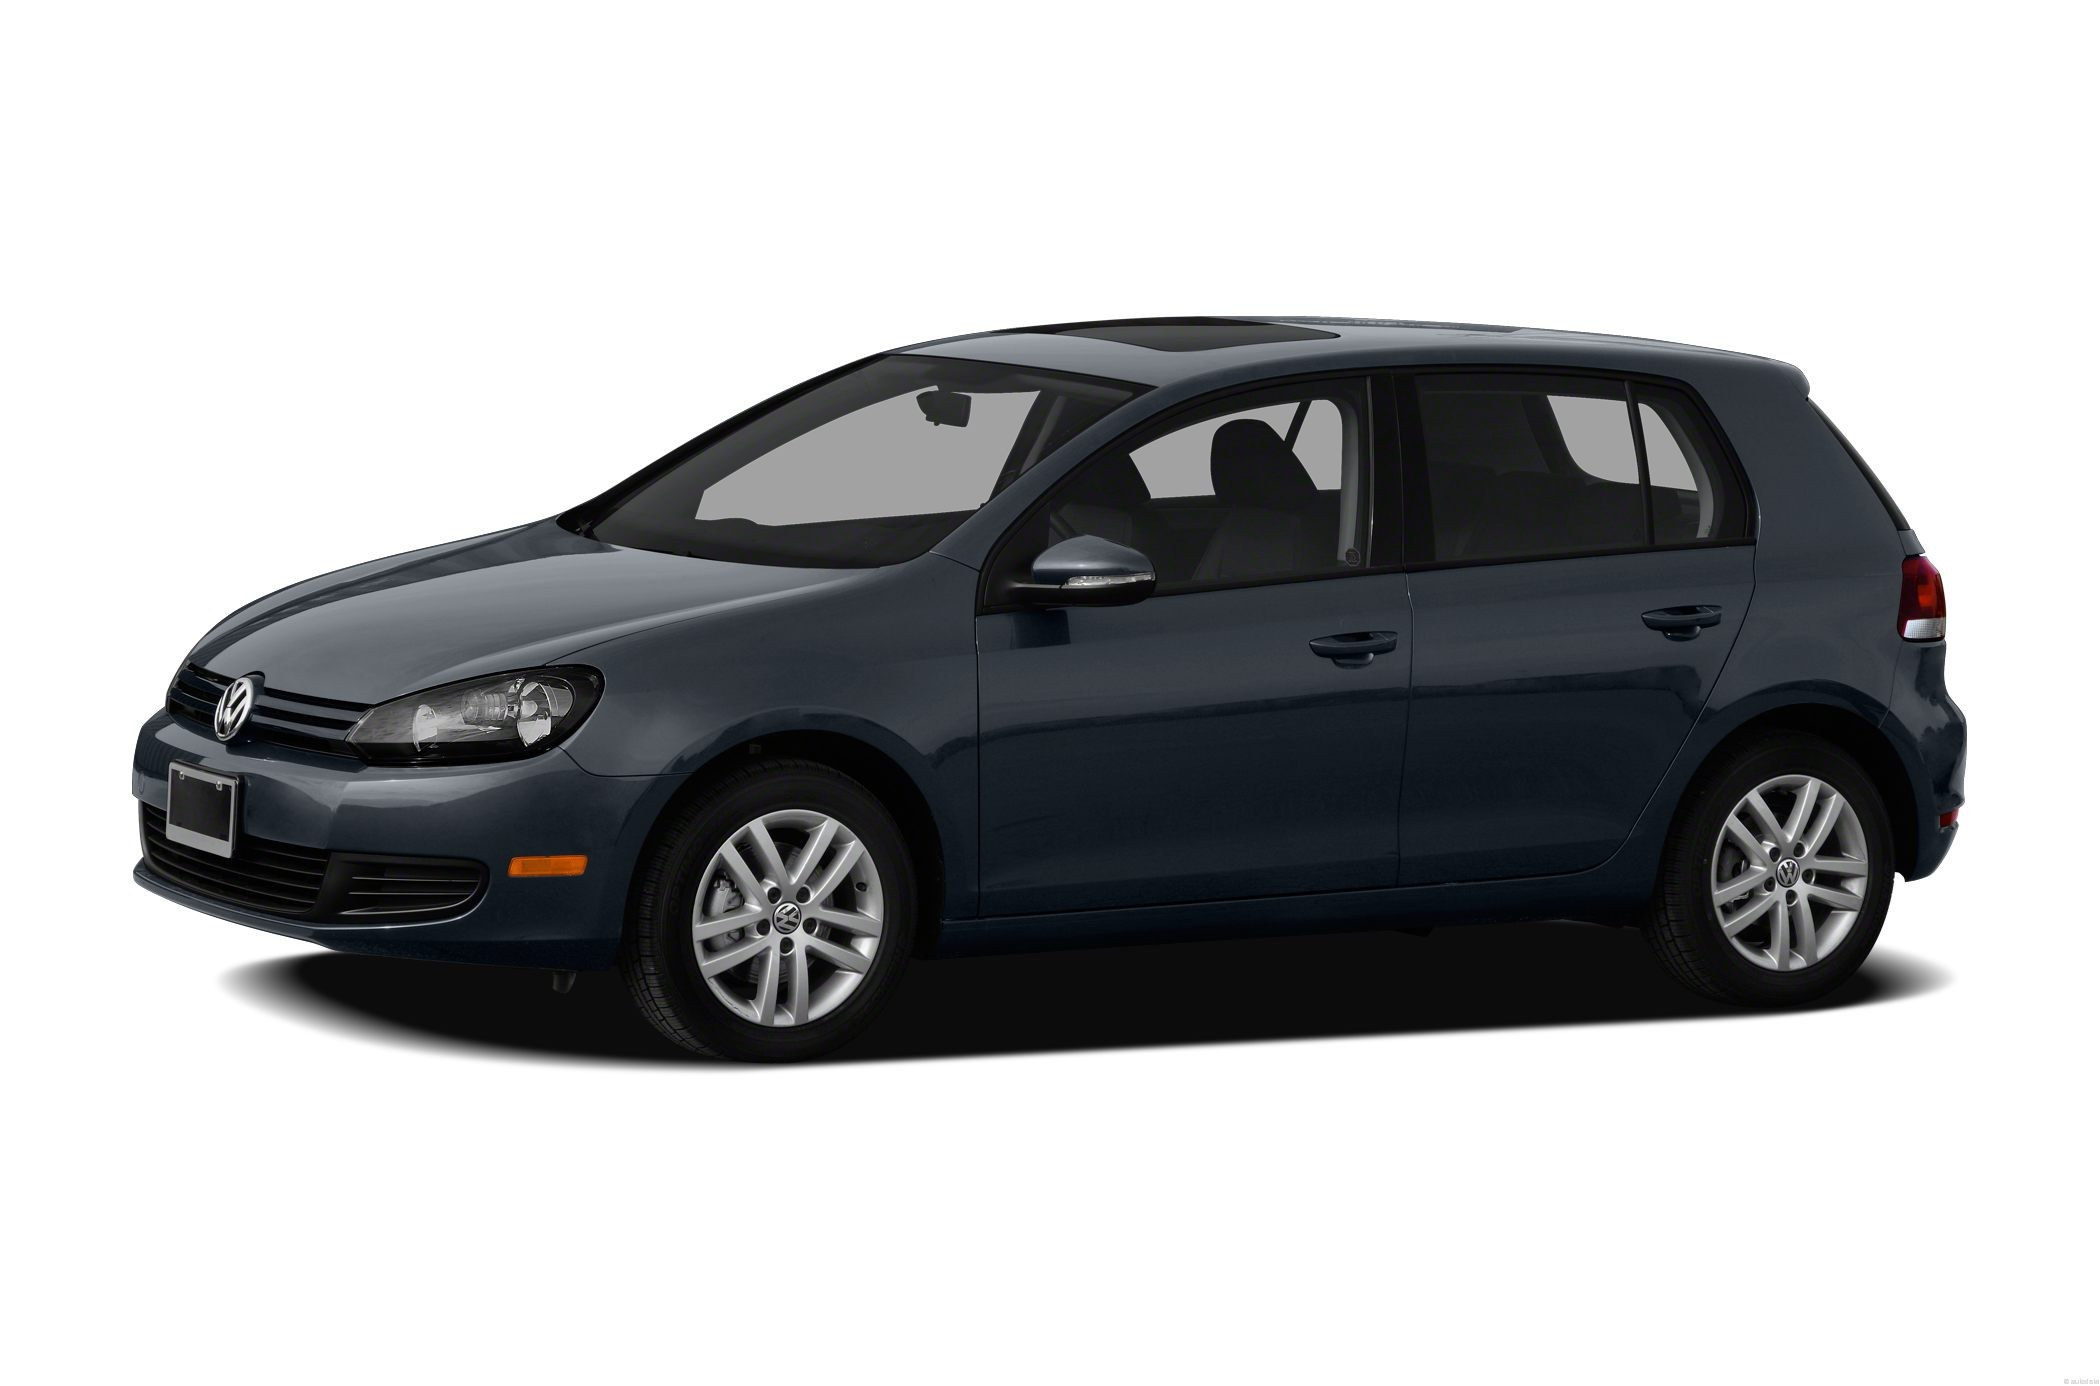 2012 Volkswagen Golf #13